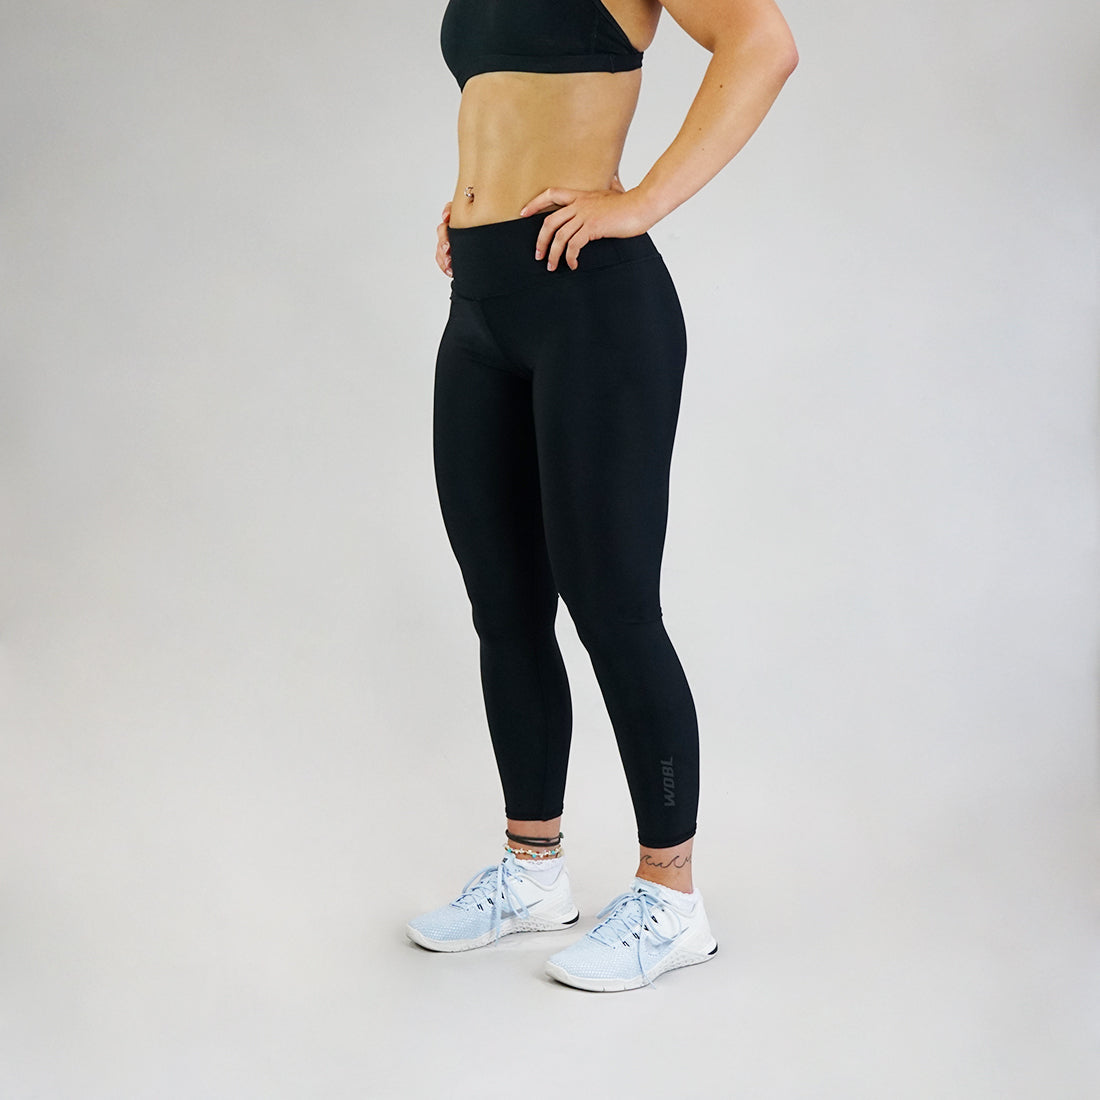 Core Leggings - Stealth Black 7/8